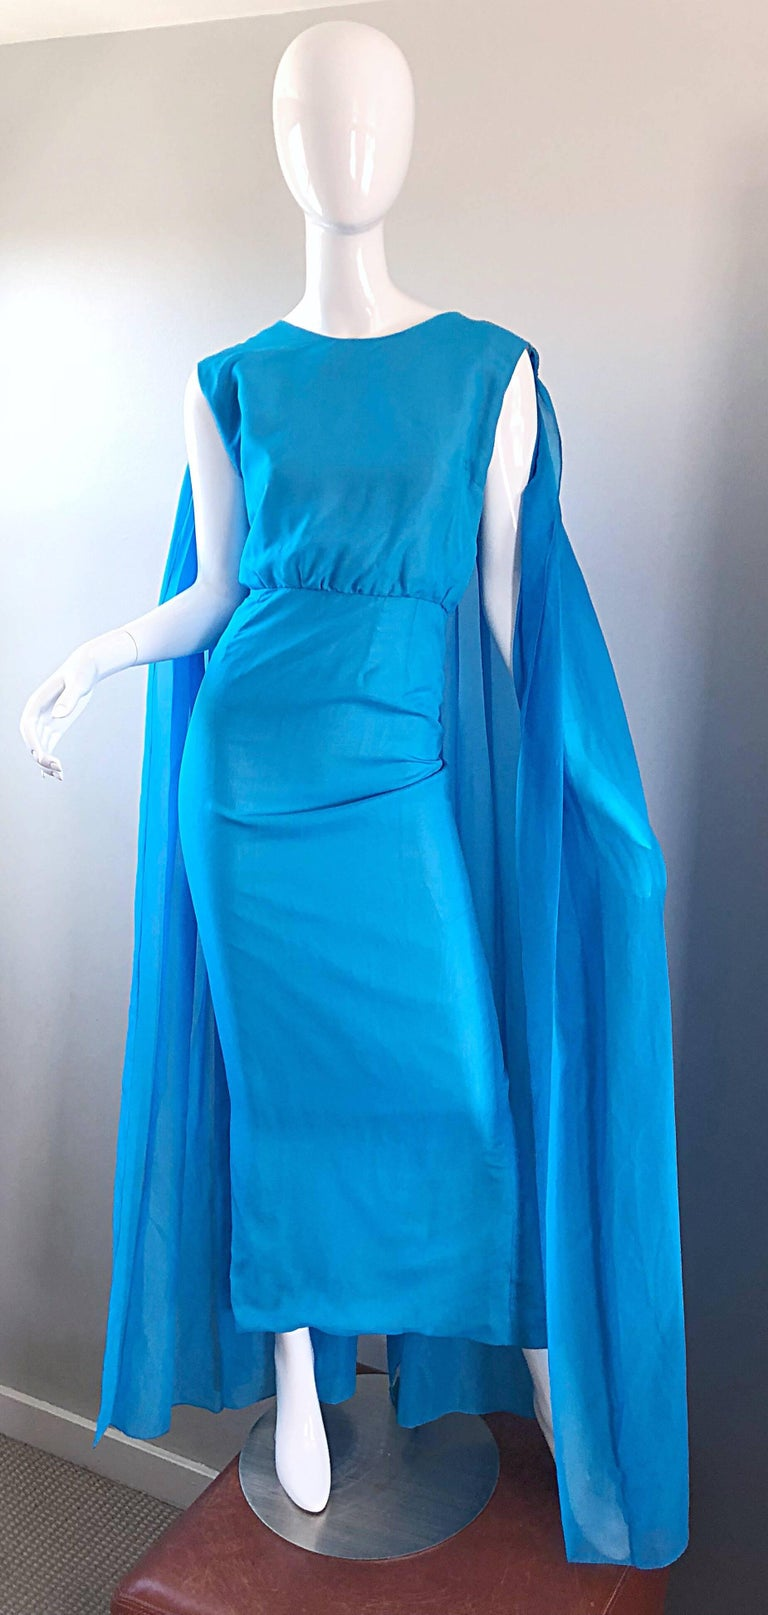 Incredible 1960s Turquoise Blue Chiffon Rhinestone Encrusted Vintage Cape Gown In Excellent Condition For Sale In Chicago, IL